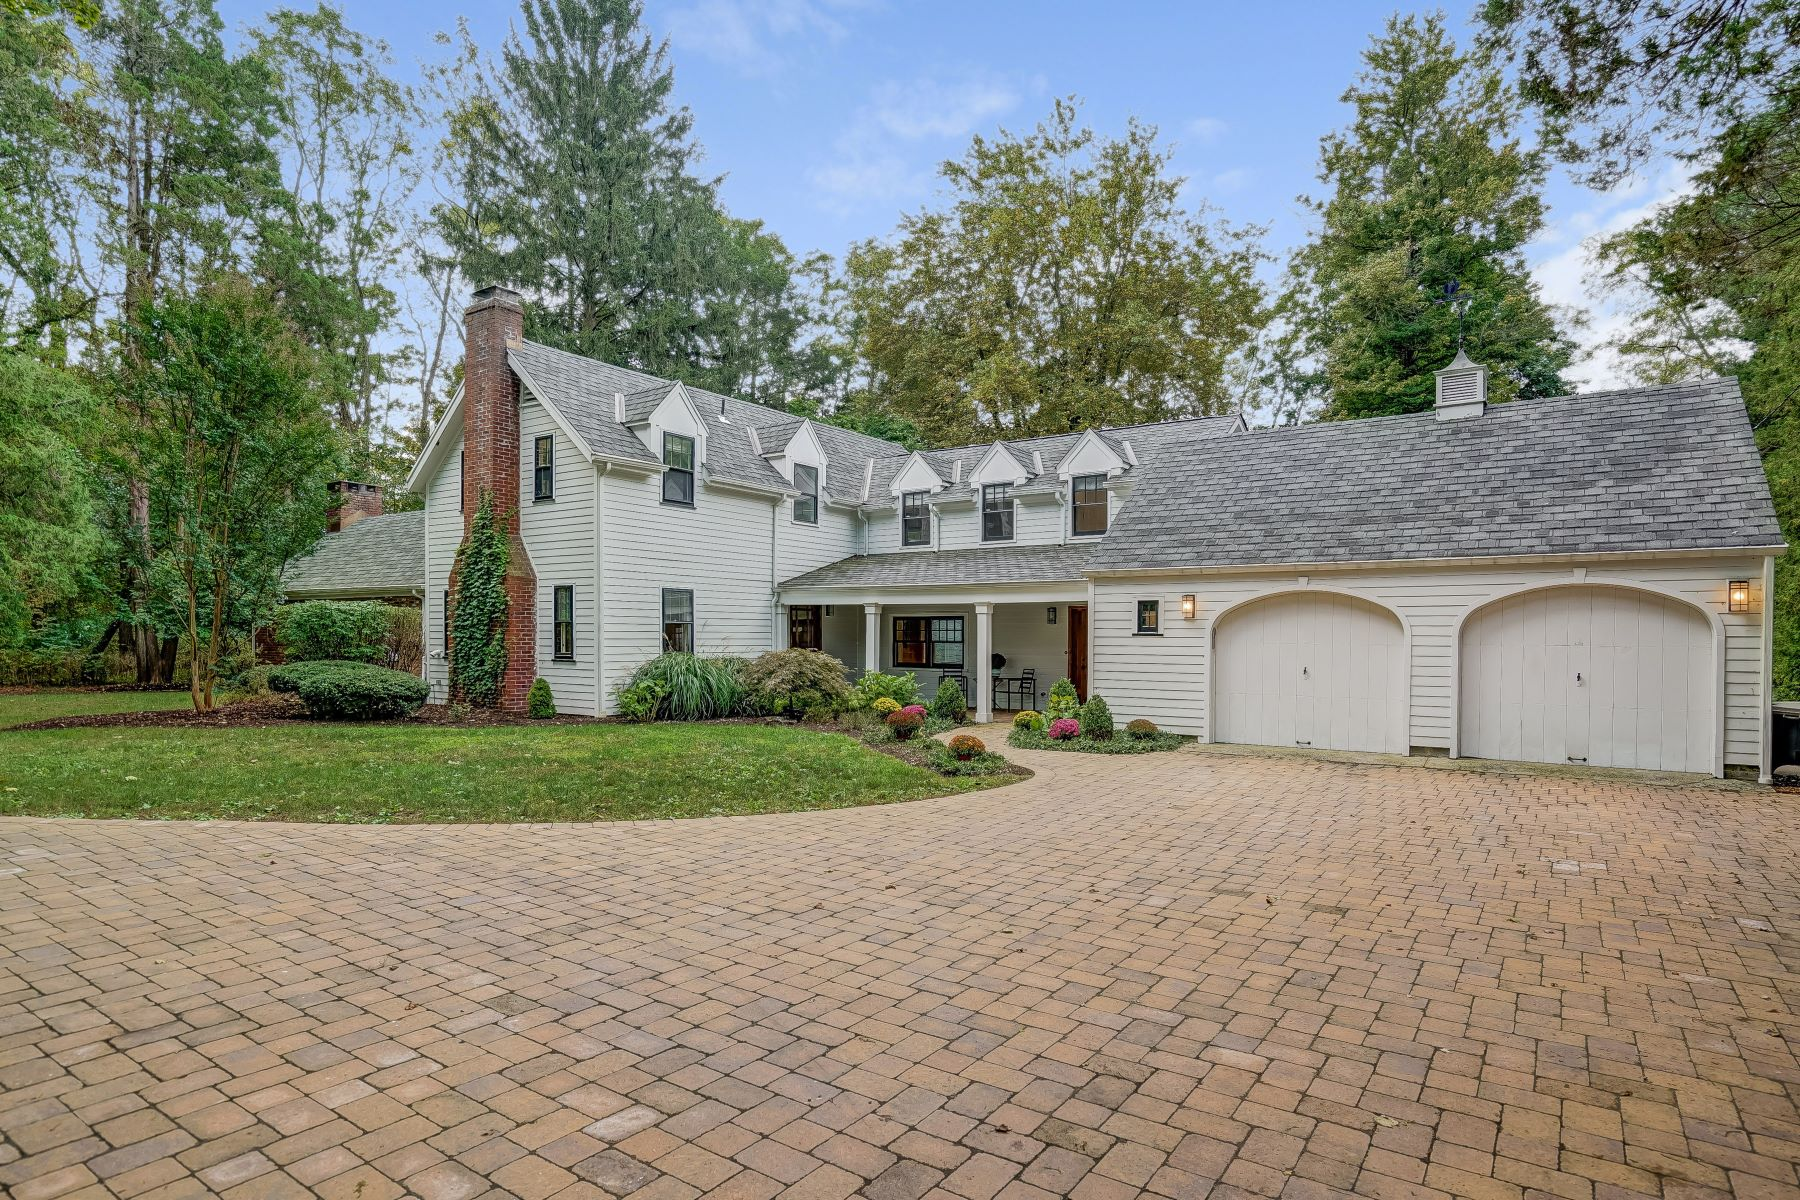 Maison unifamiliale pour l Vente à Charming Custom Colonial 27 Sunnybrook Road Basking Ridge, New Jersey 07920 États-Unis